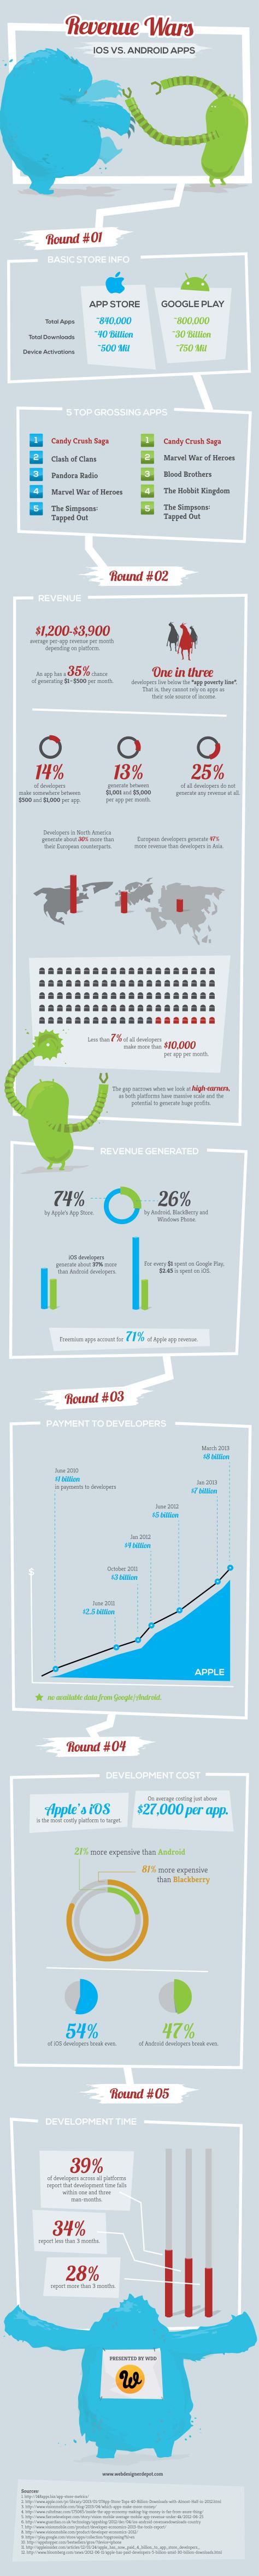 ios-vs-android-revenue-wars_518a4edb39113